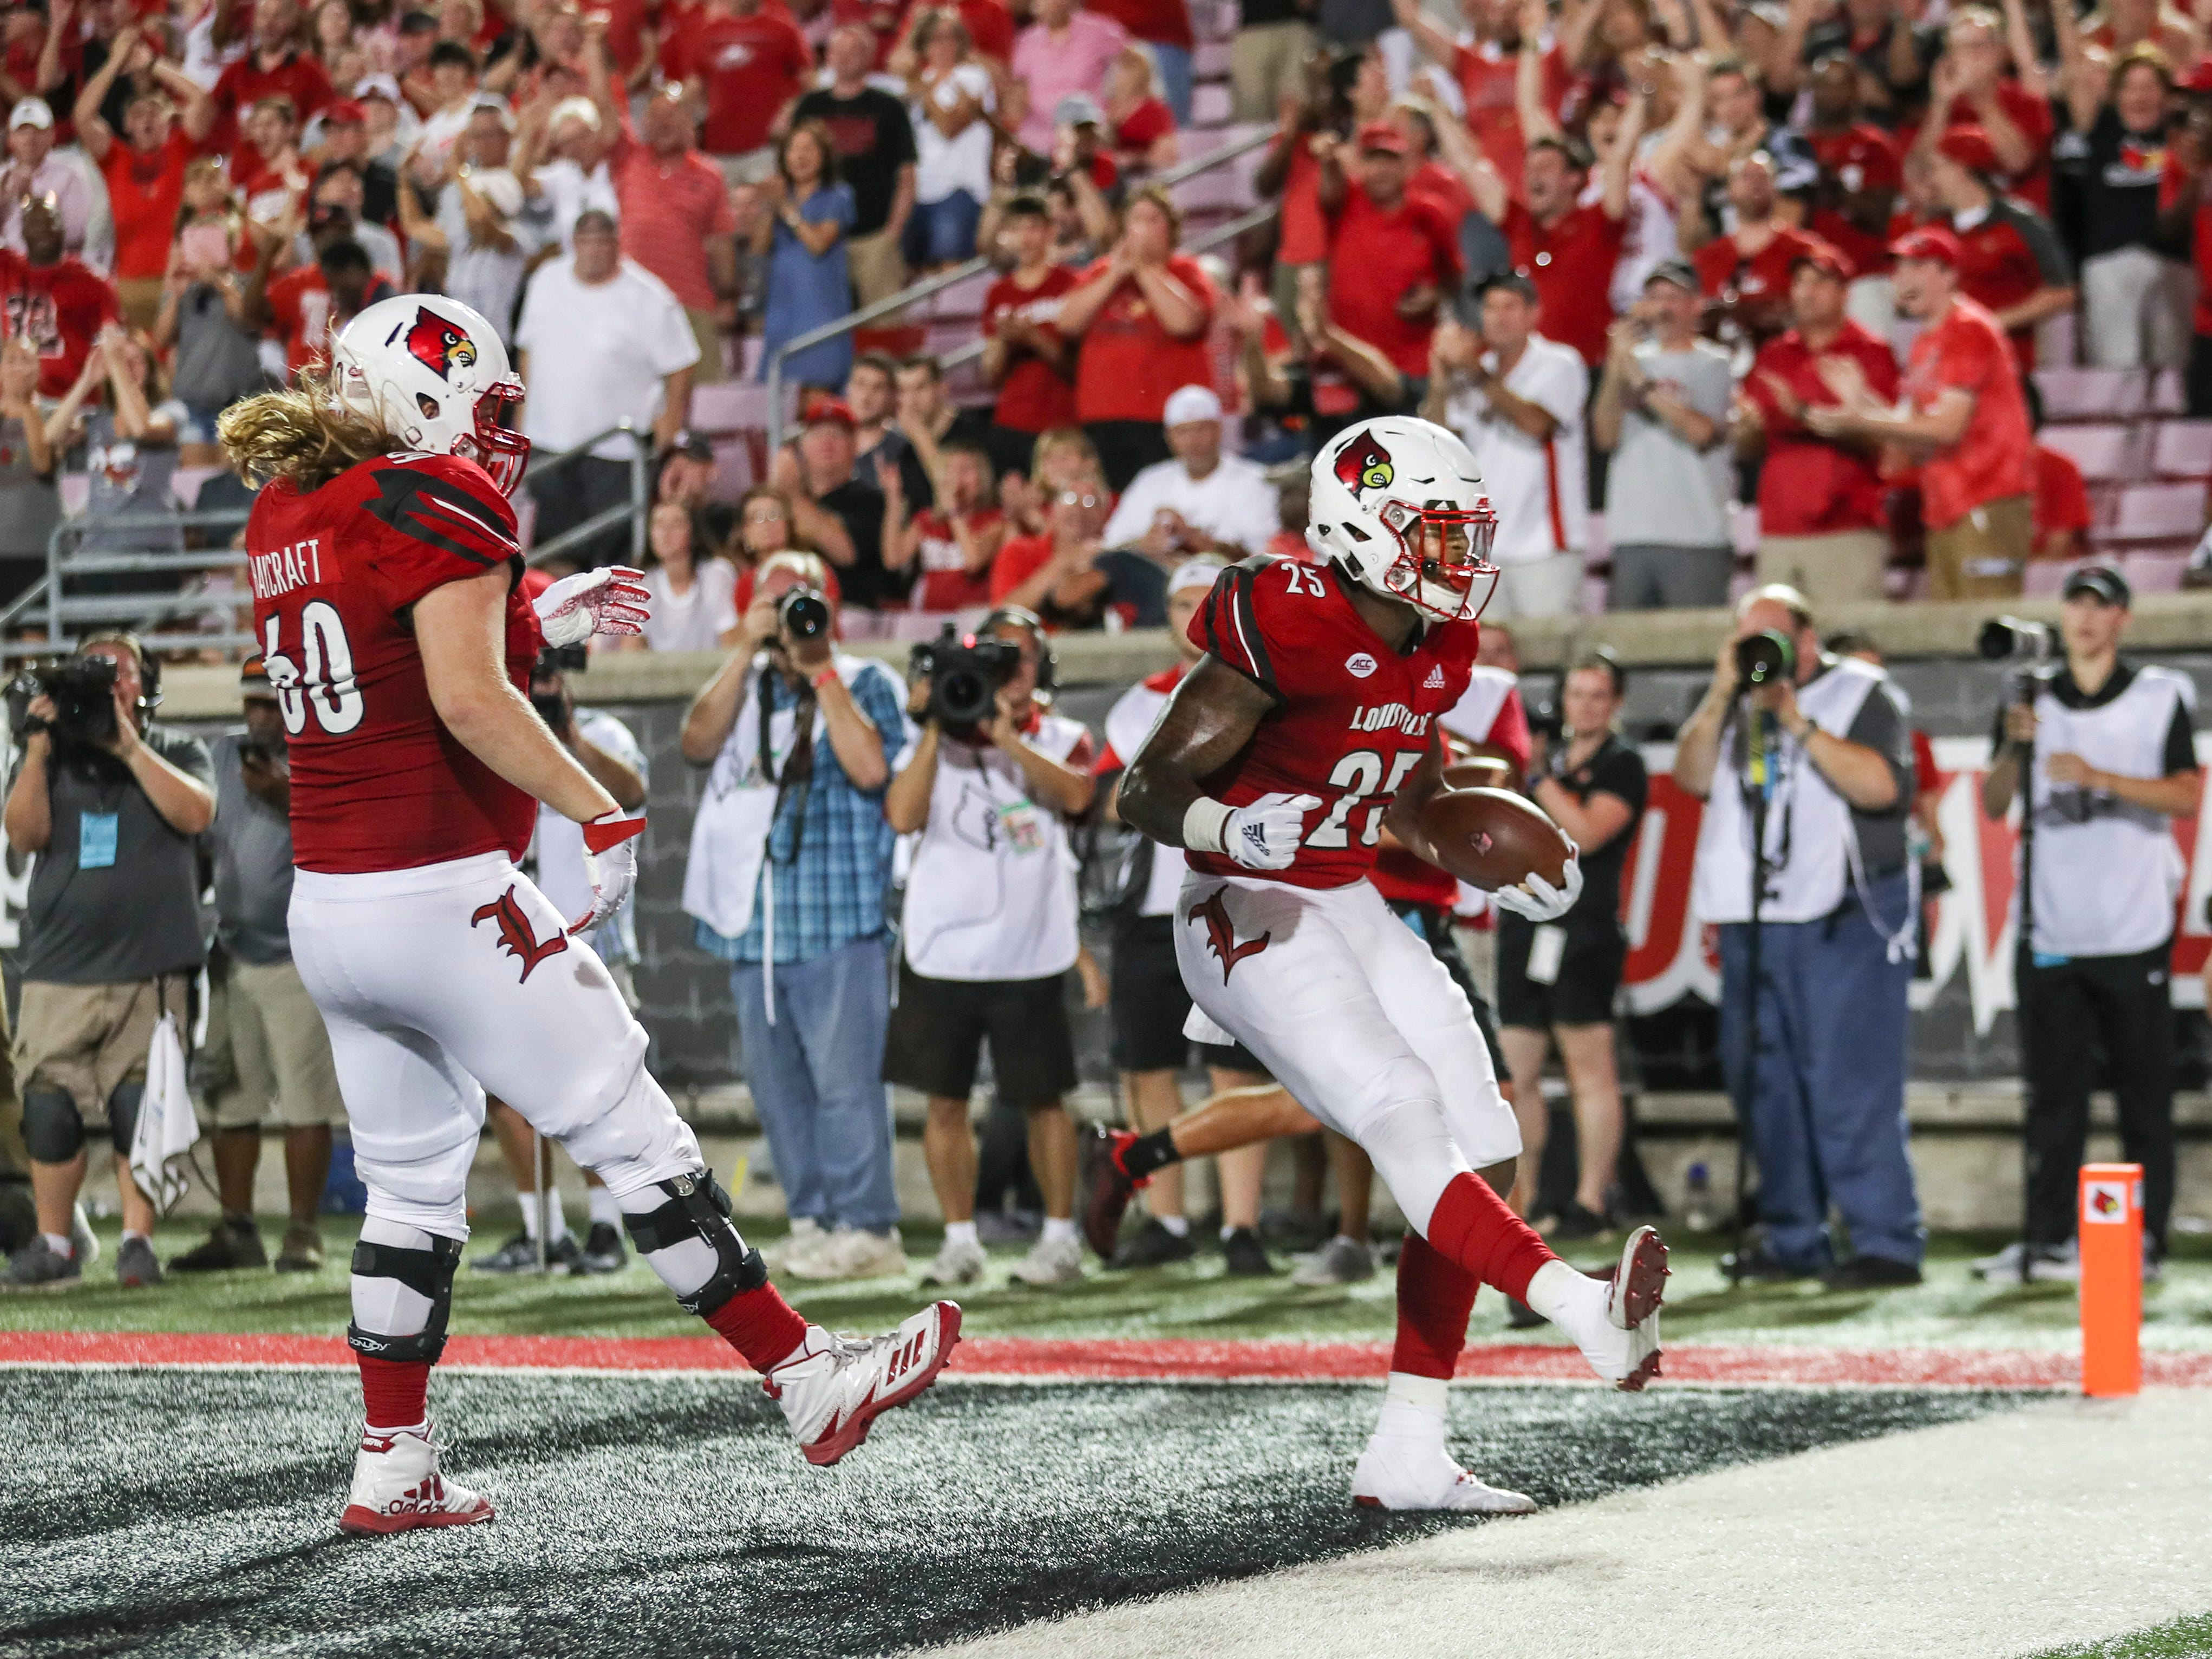 Louisville's Dae Williams celebrates as he scores a touchdown to bring the Cardinals close to Western Kentucky after trailing by two touchdowns through the early third quarter. It was Louisville's first touchdown of the game. Saturday, Sept. 15, 2018.